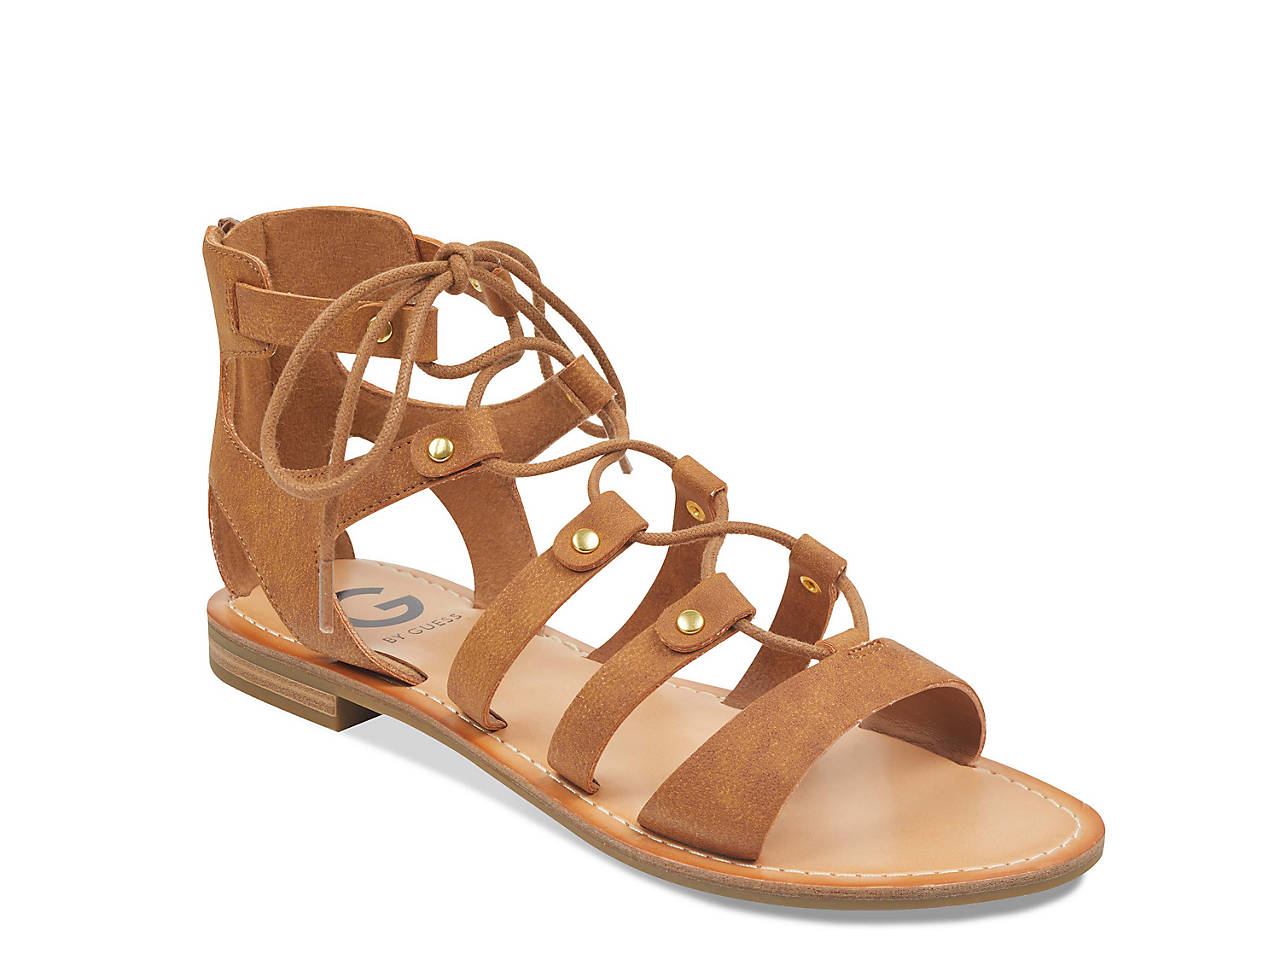 7d4f854595a4 G by GUESS Hotsy Gladiator Sandal Women s Shoes